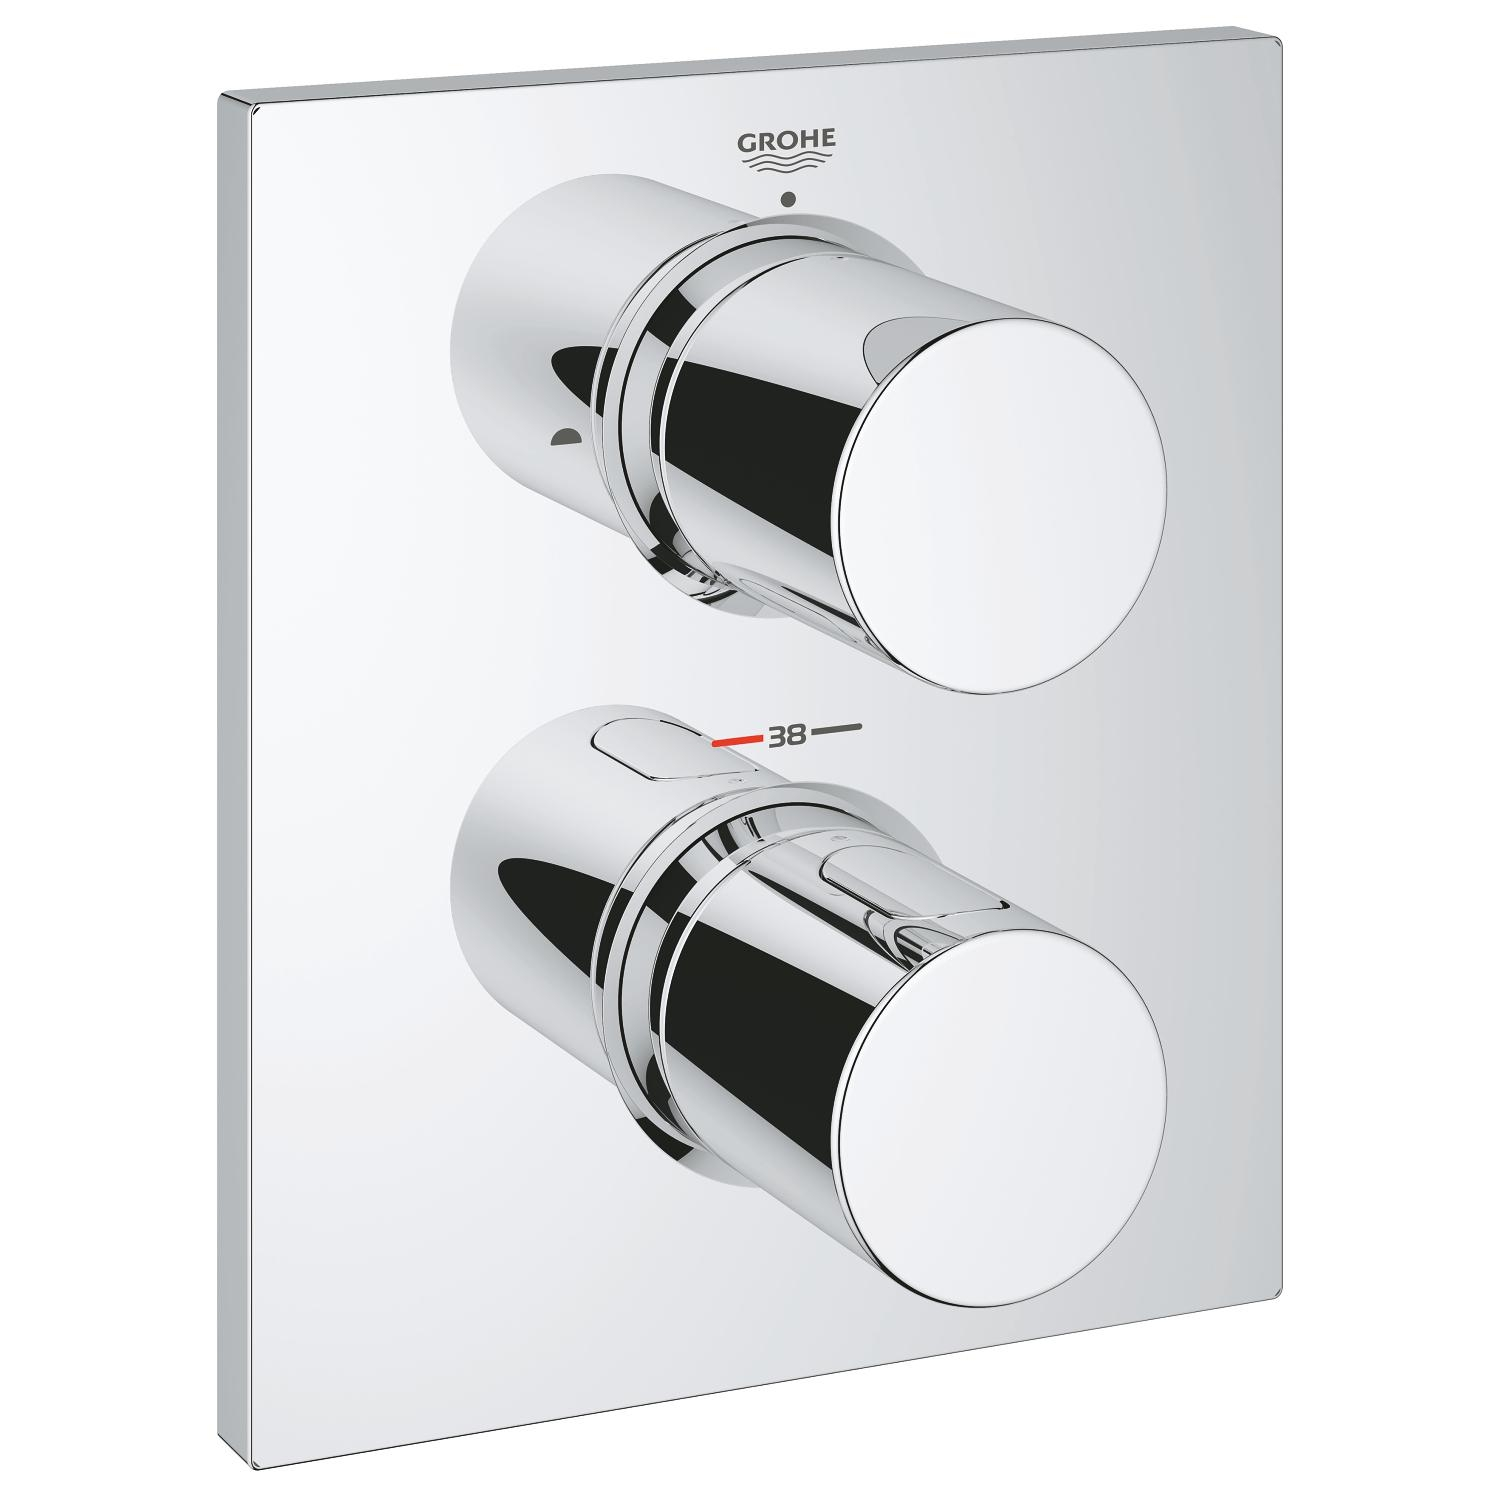 GROHE Grohtherm F bei xTWO